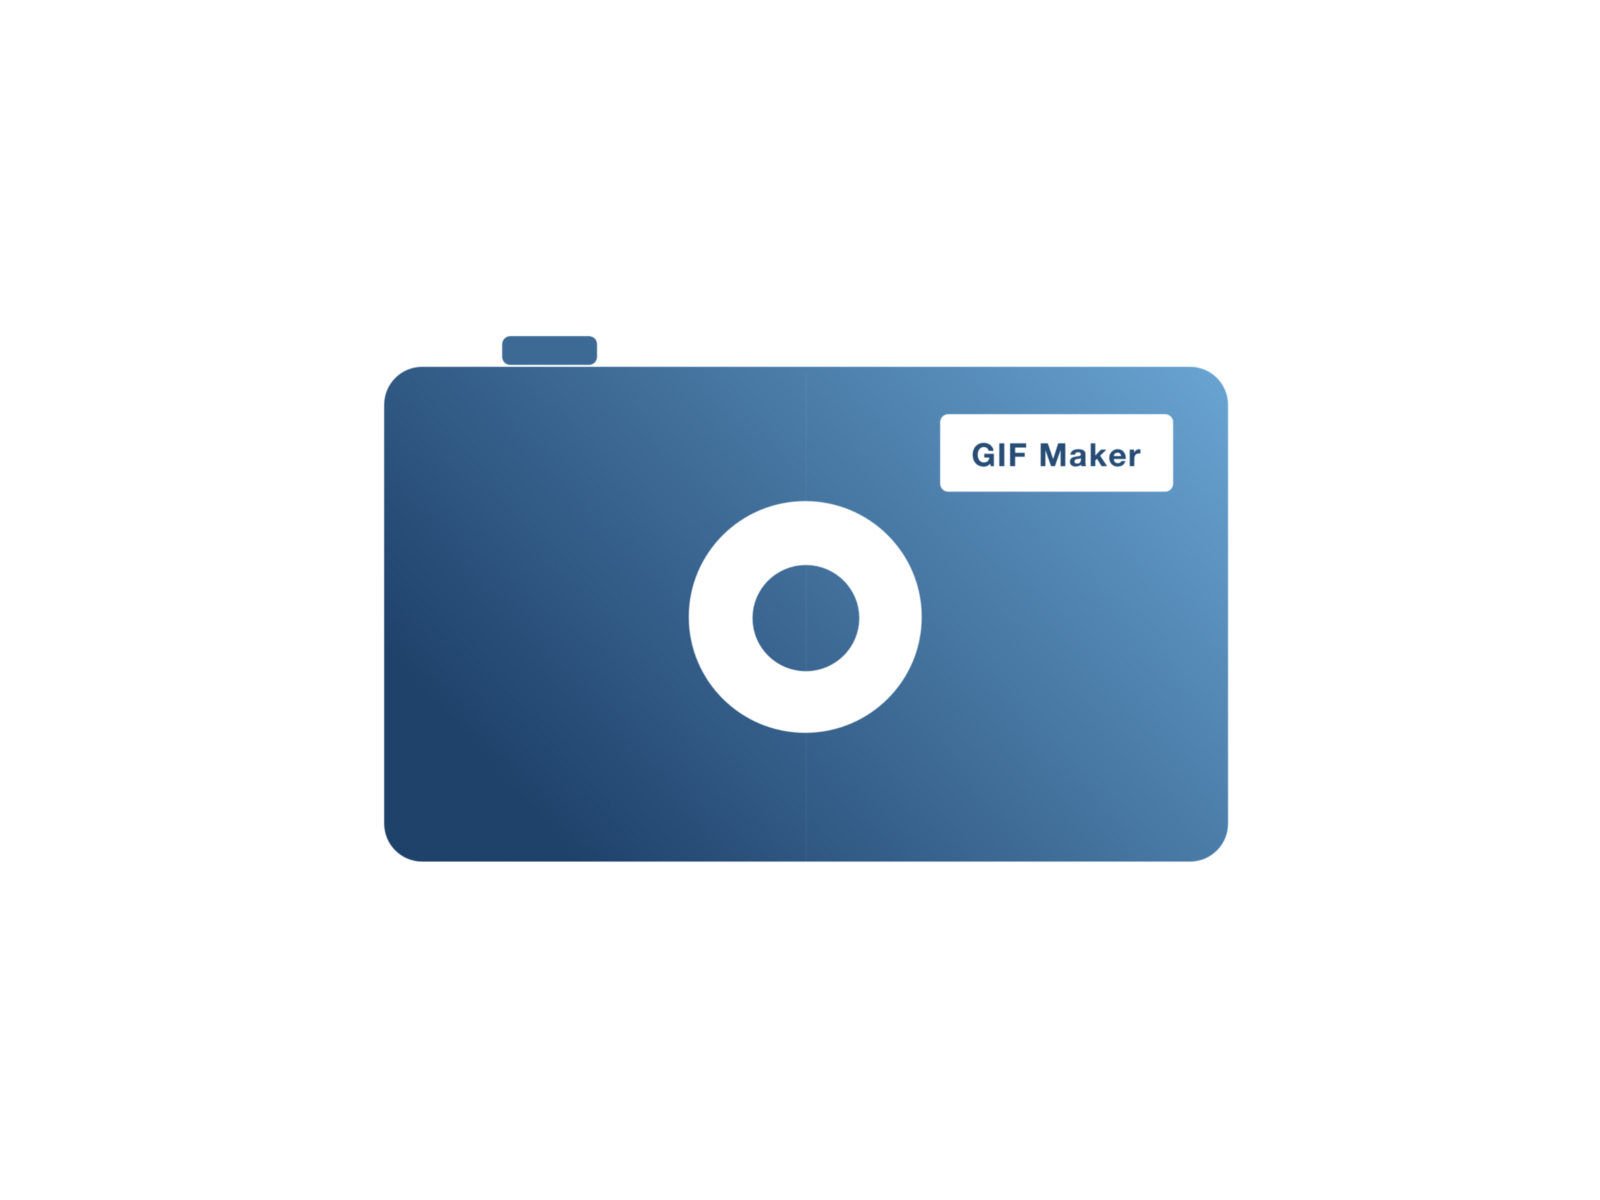 i conceived a gif maker app idea sometime ago and i thought about making an app icon for it and thats exactly what i tried doing for todays challenge